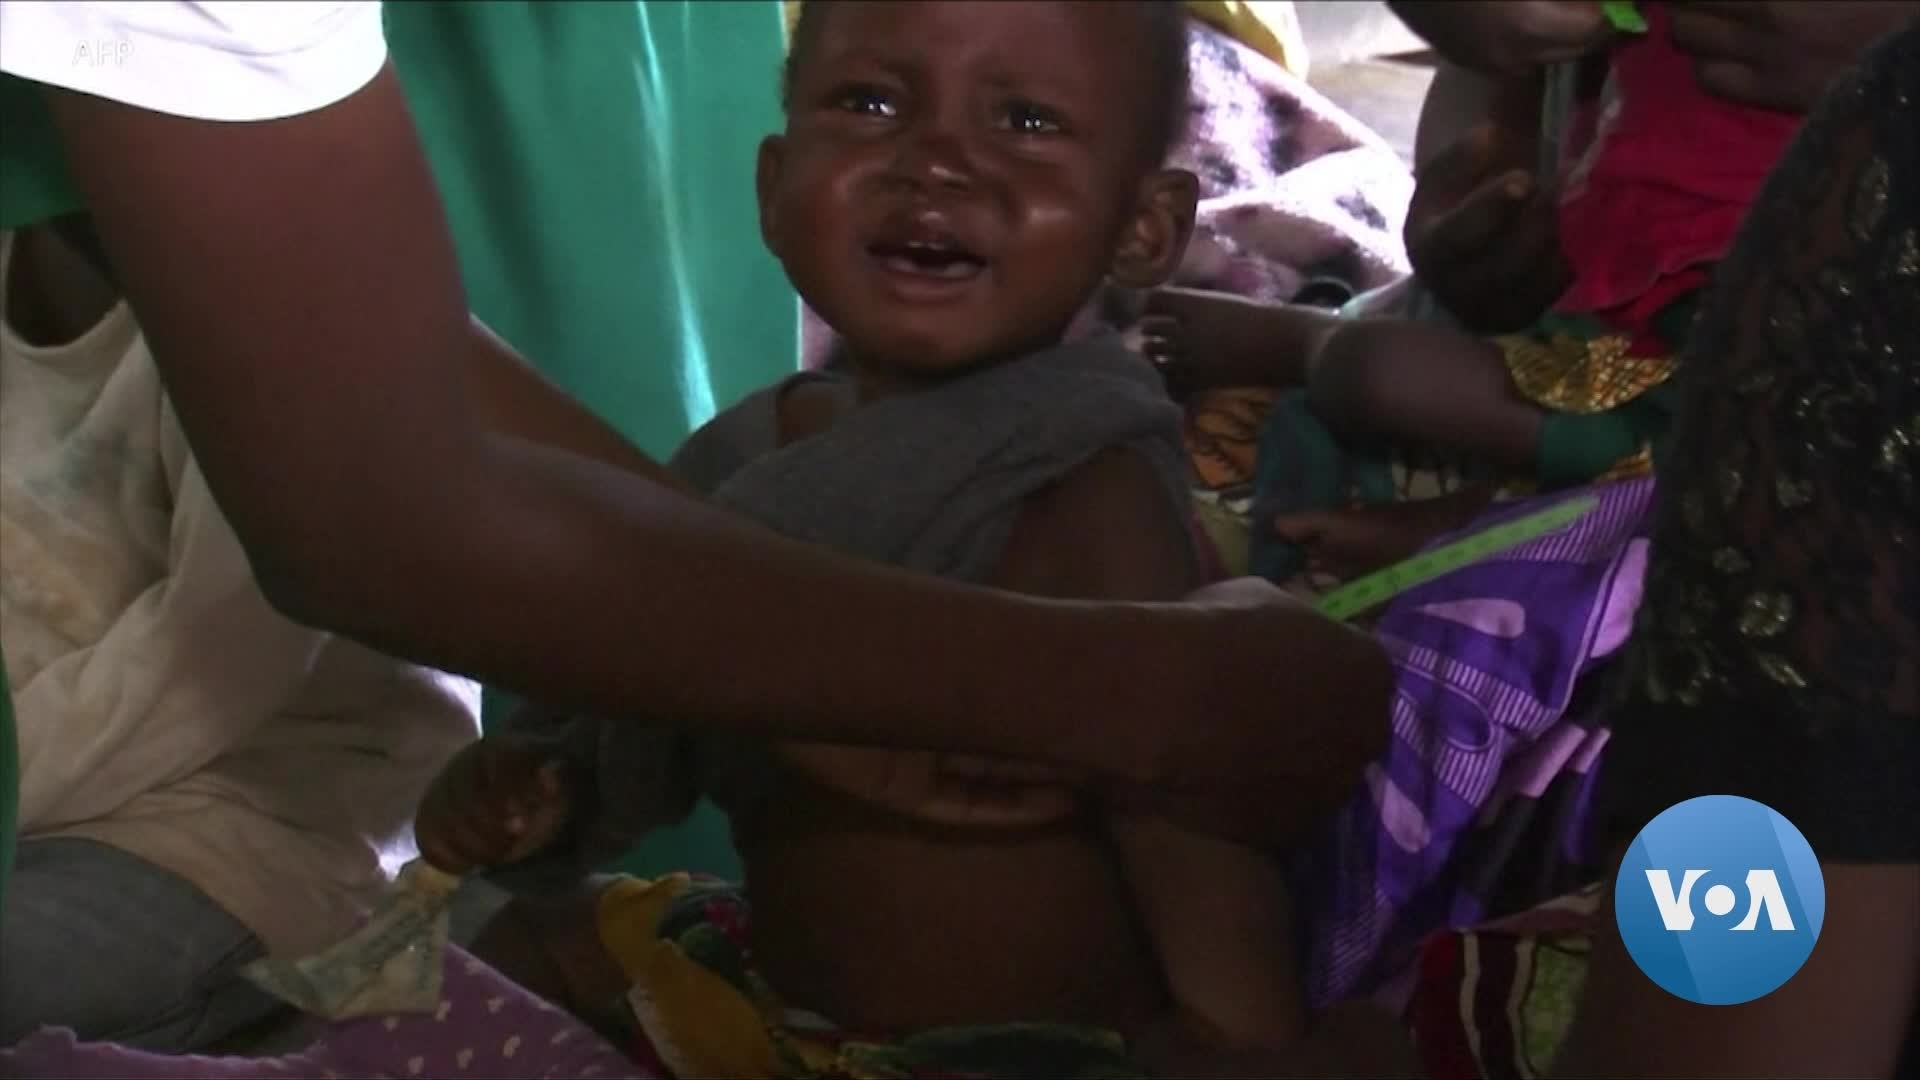 African Children Will Make up Half of World's Poor by 2030